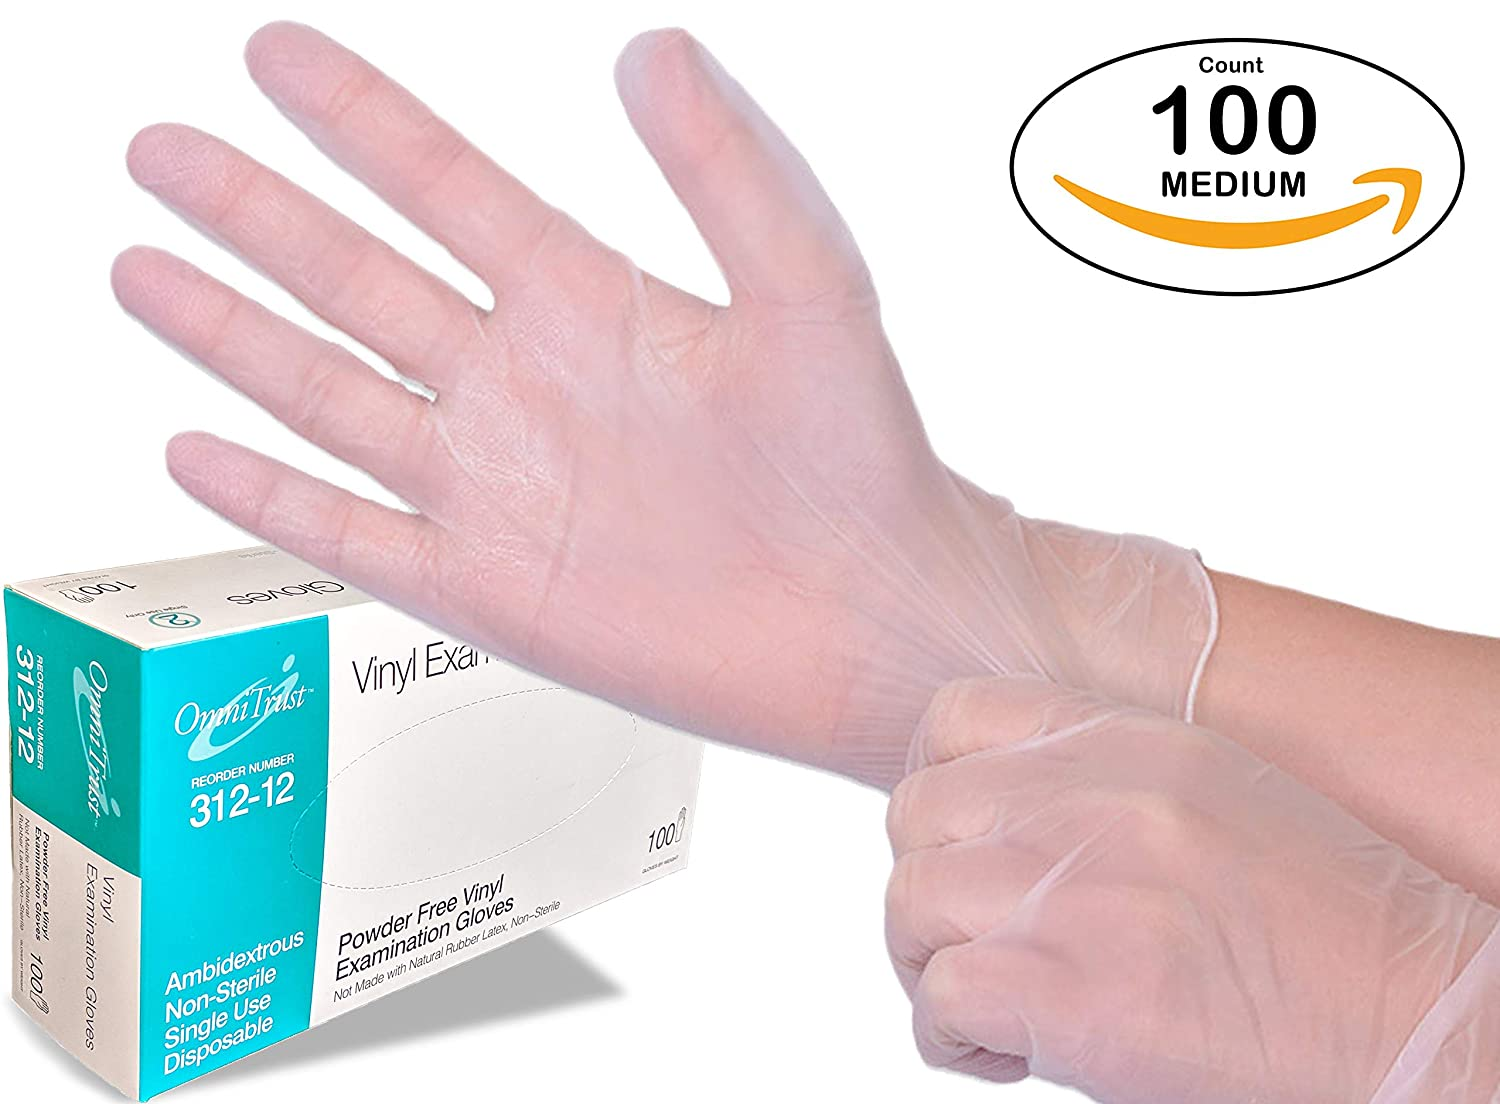 Medium Disposable Vinyl Gloves 100 Count (One Pack) - Powder Free, Clear, Latex Free and Allergy Free, Plastic, Medical, Food Service, Cleaning Service